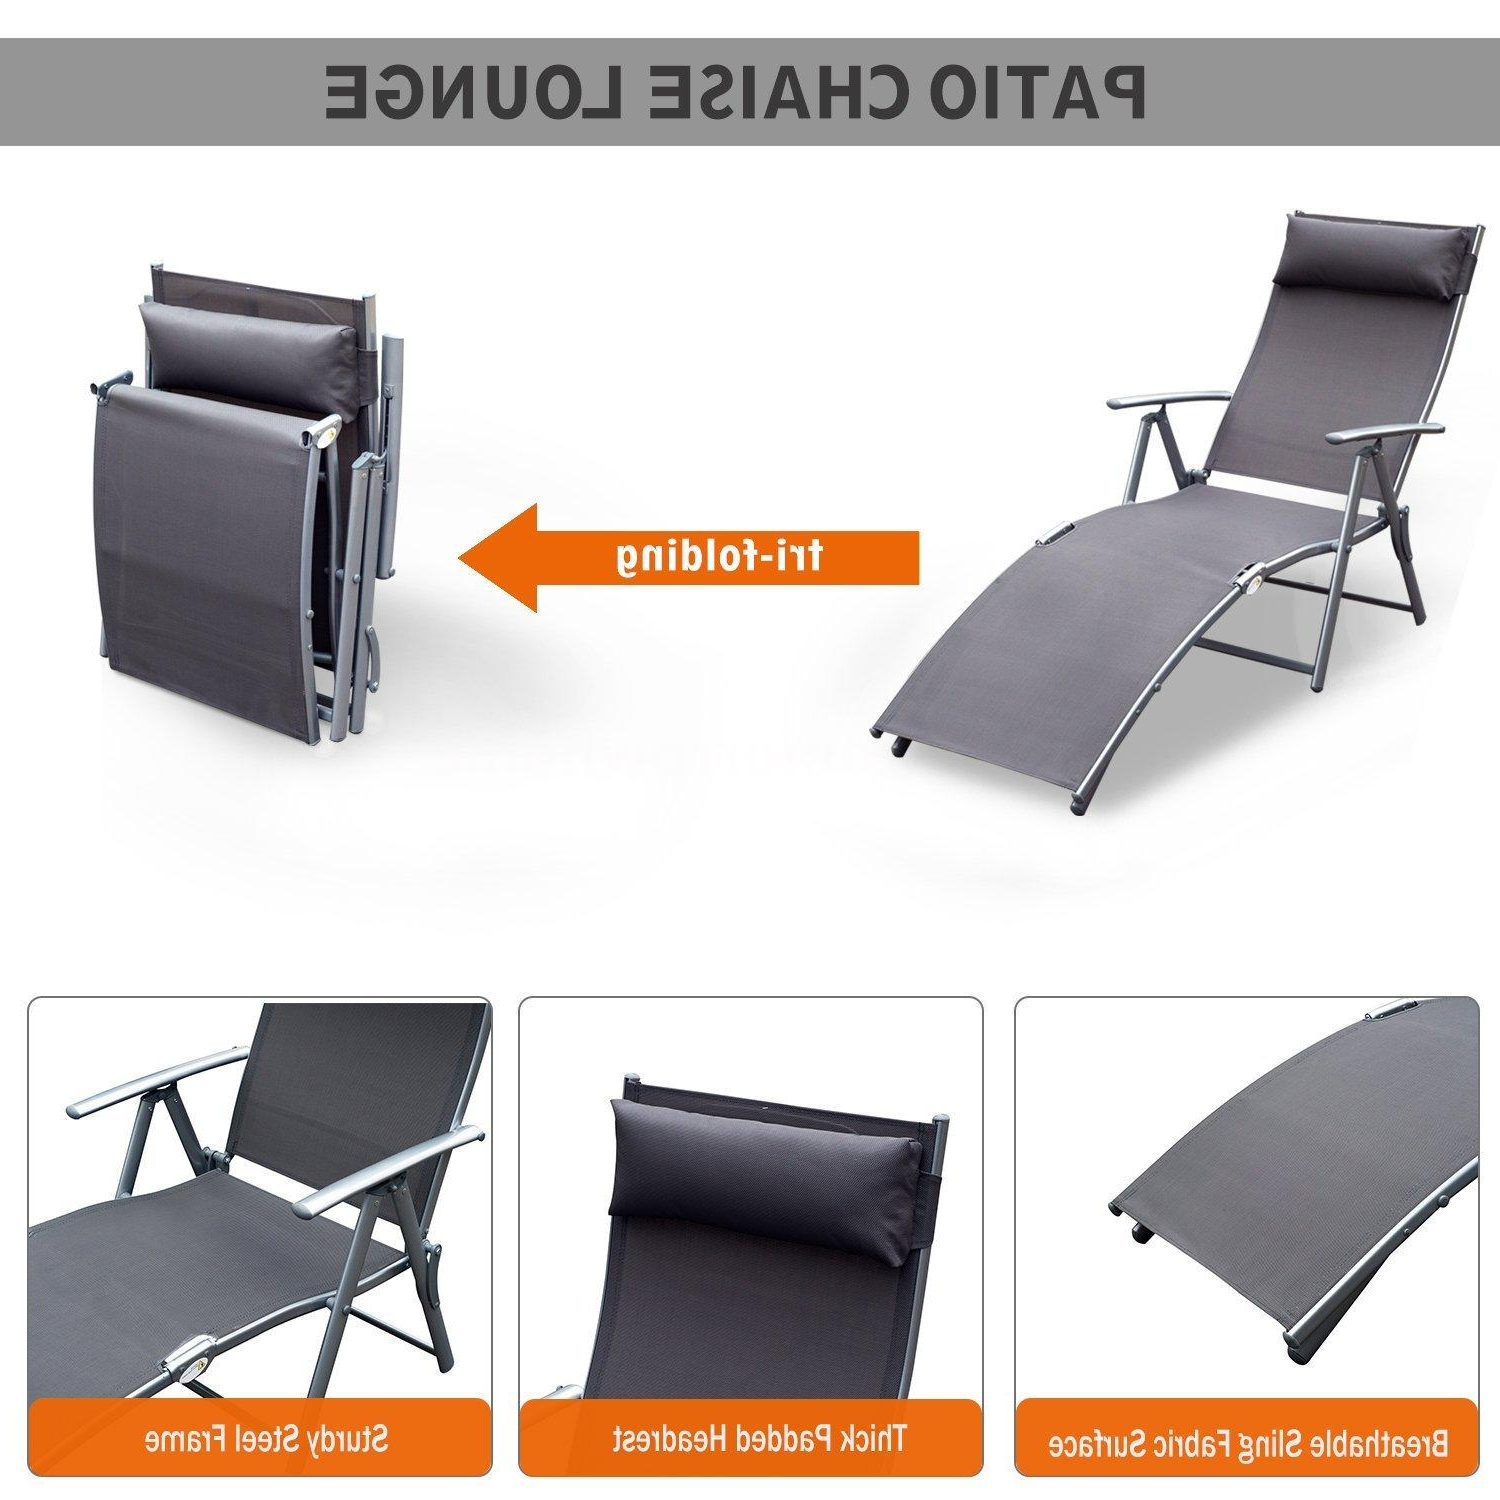 Adjustable Sling Fabric Patio Chaise Lounges Regarding 2020 Details About Steel Sling Fabric Outdoor Folding Chaise Lounge Chair  Recliner – Grey K5C (View 7 of 25)